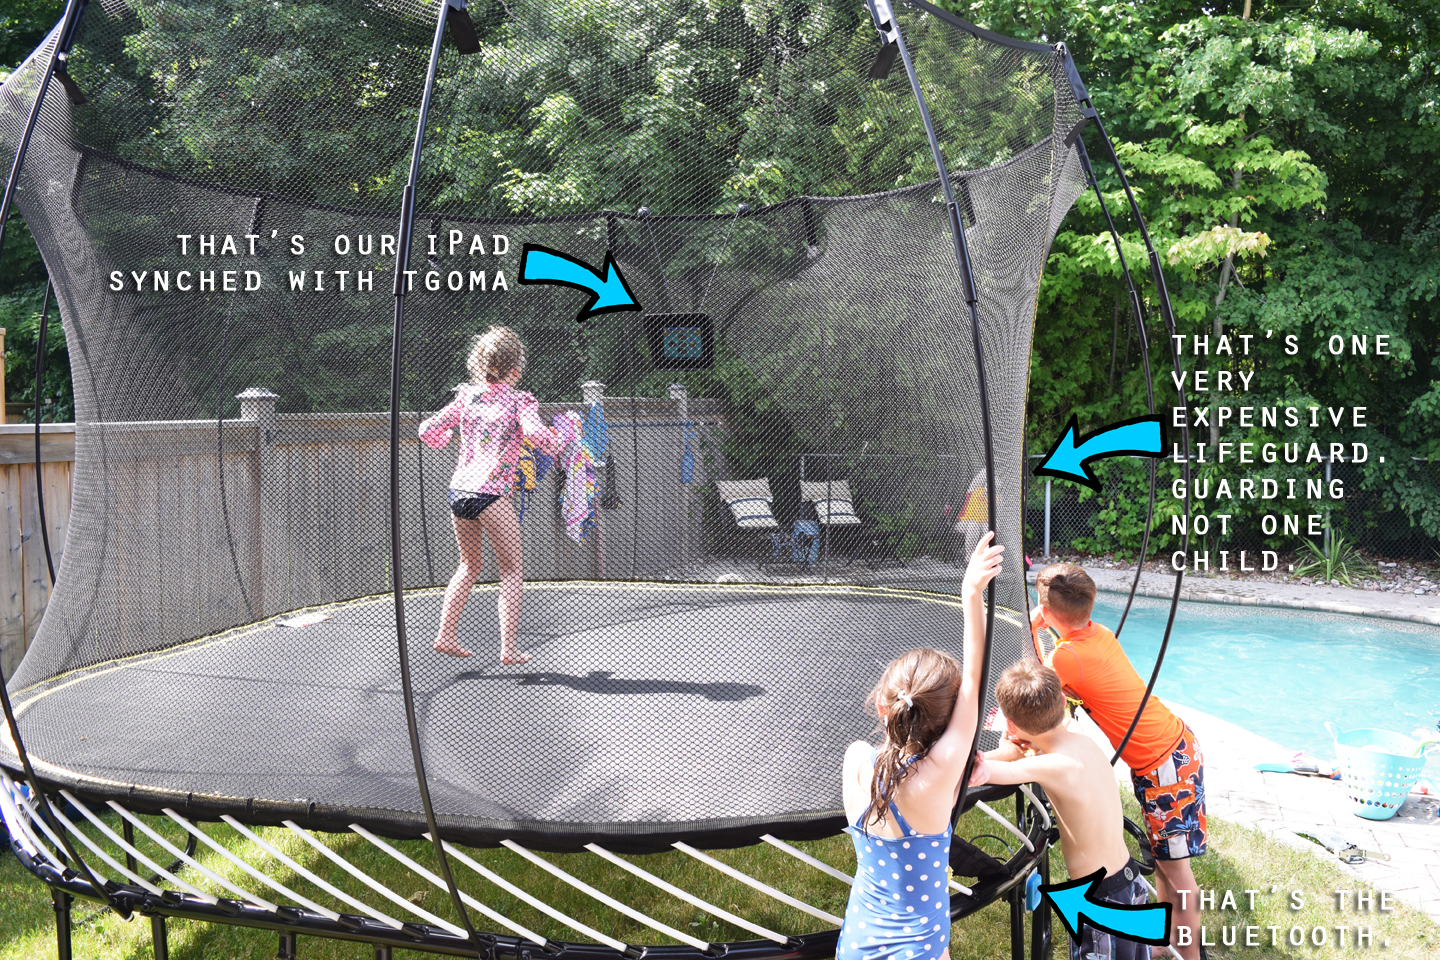 Springfree Trampoline with tgoma